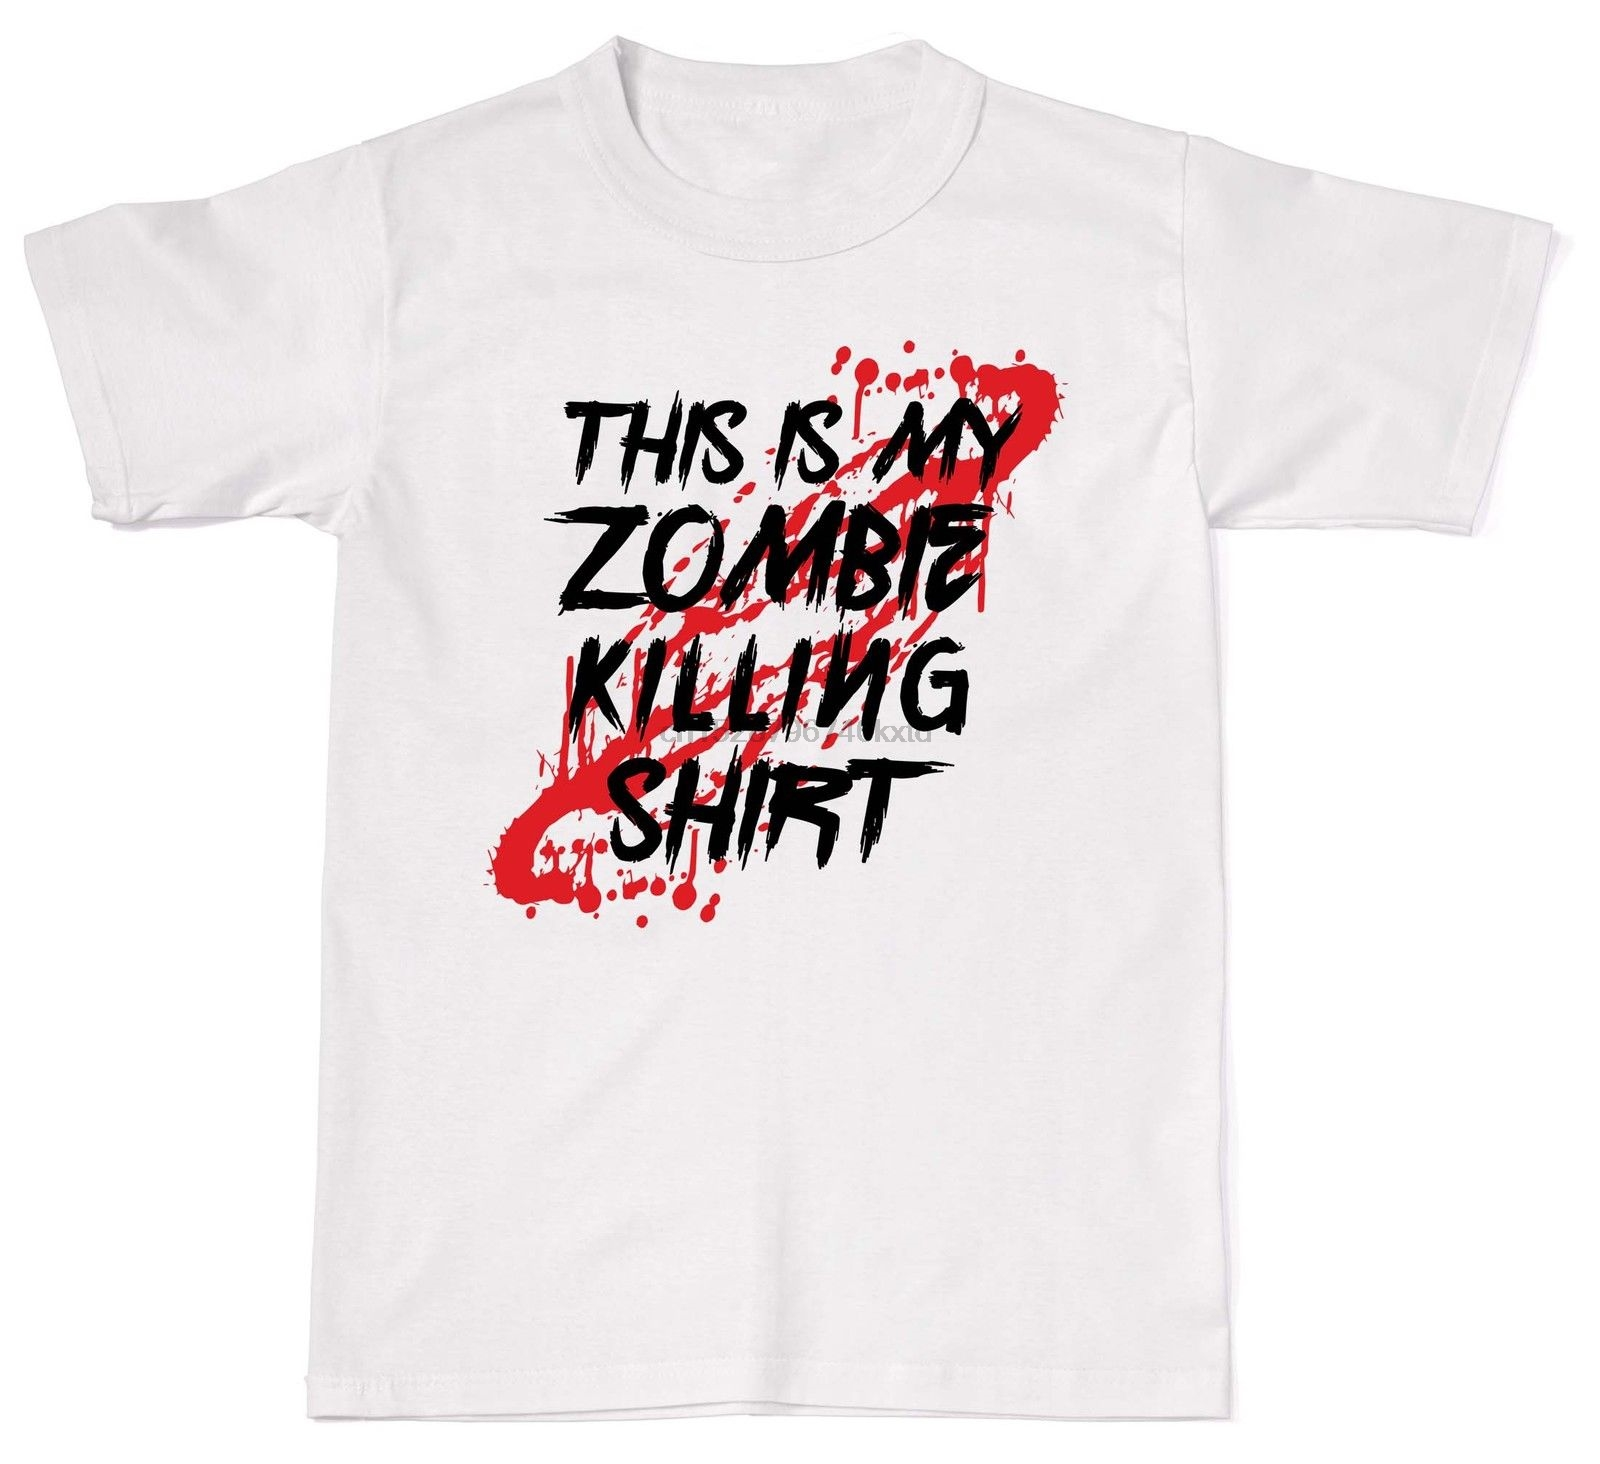 2019 Hot sale Free shipping This Is My Zombie Killing Shirt Funny Gamer Nerd Geek Mens Cotton T Shirt in T Shirts from Men 39 s Clothing